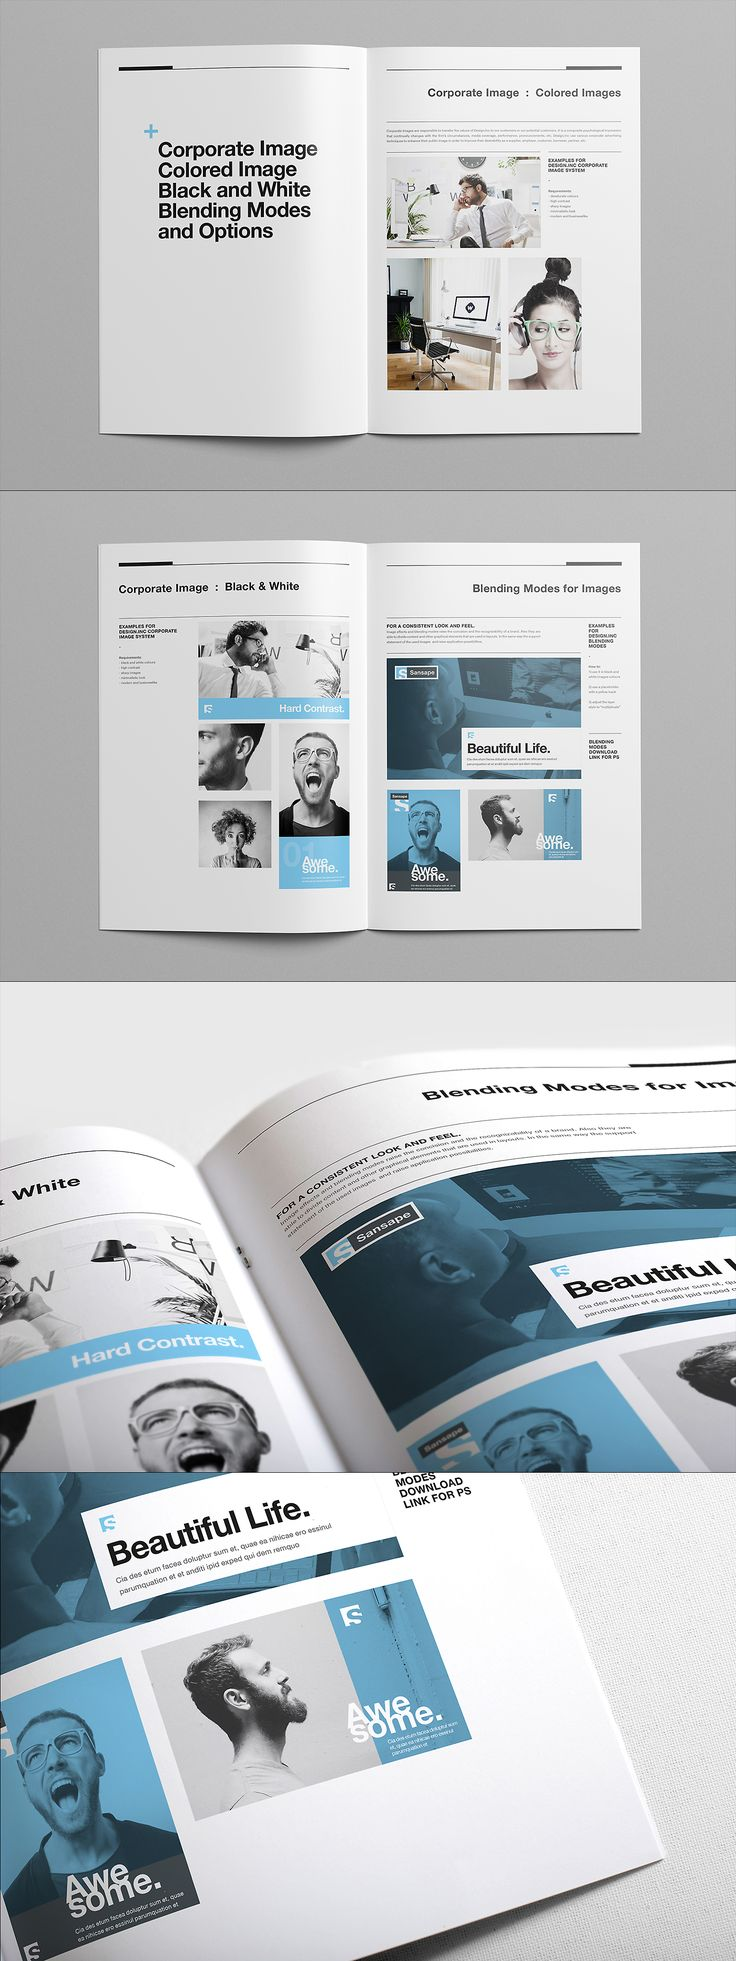 Brand Manual And Identity Template U2013 Corporate Design Brochure U2013 With 40  Pages And Real Text  Manual Design Templates